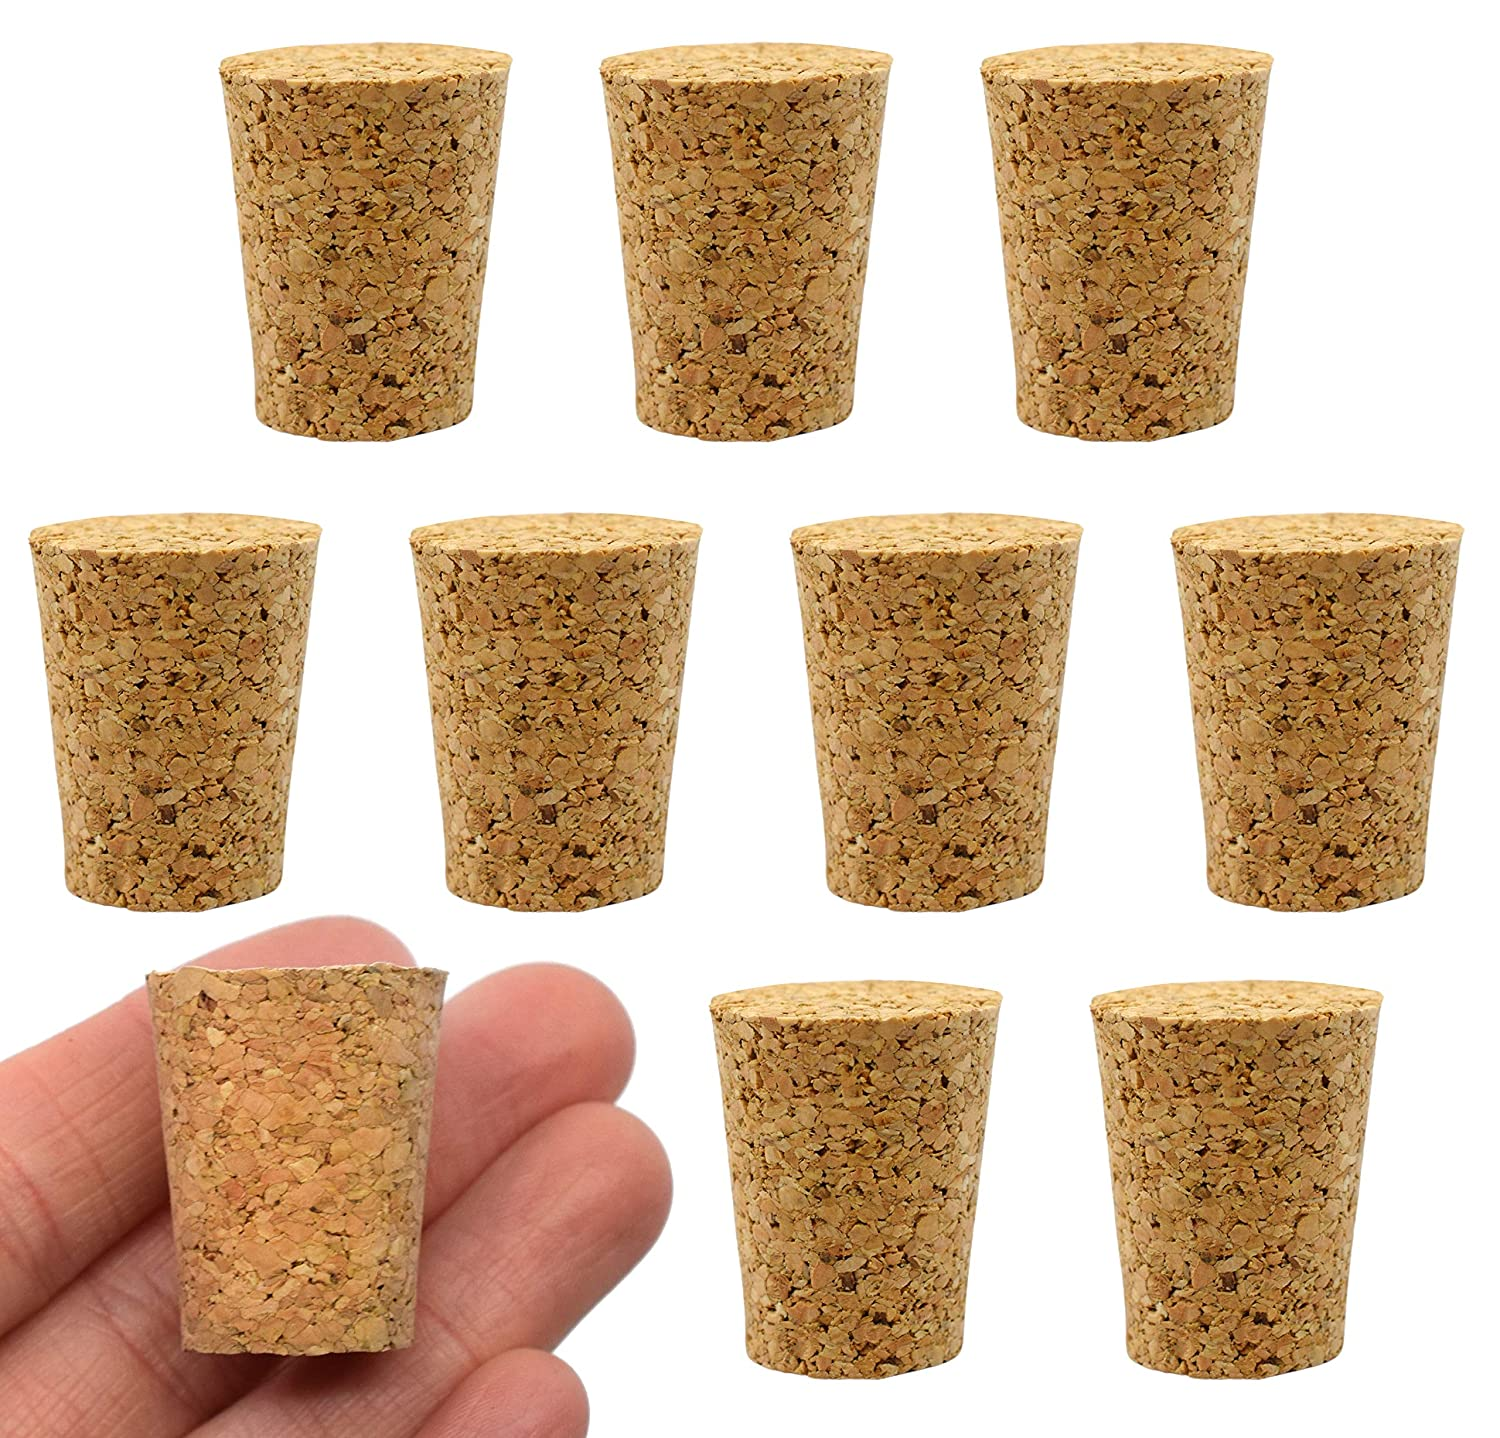 10PK Cork San Diego Mall Stoppers Dealing full price reduction Size #8-17mm Bottom Length 27mm - Top 22mm